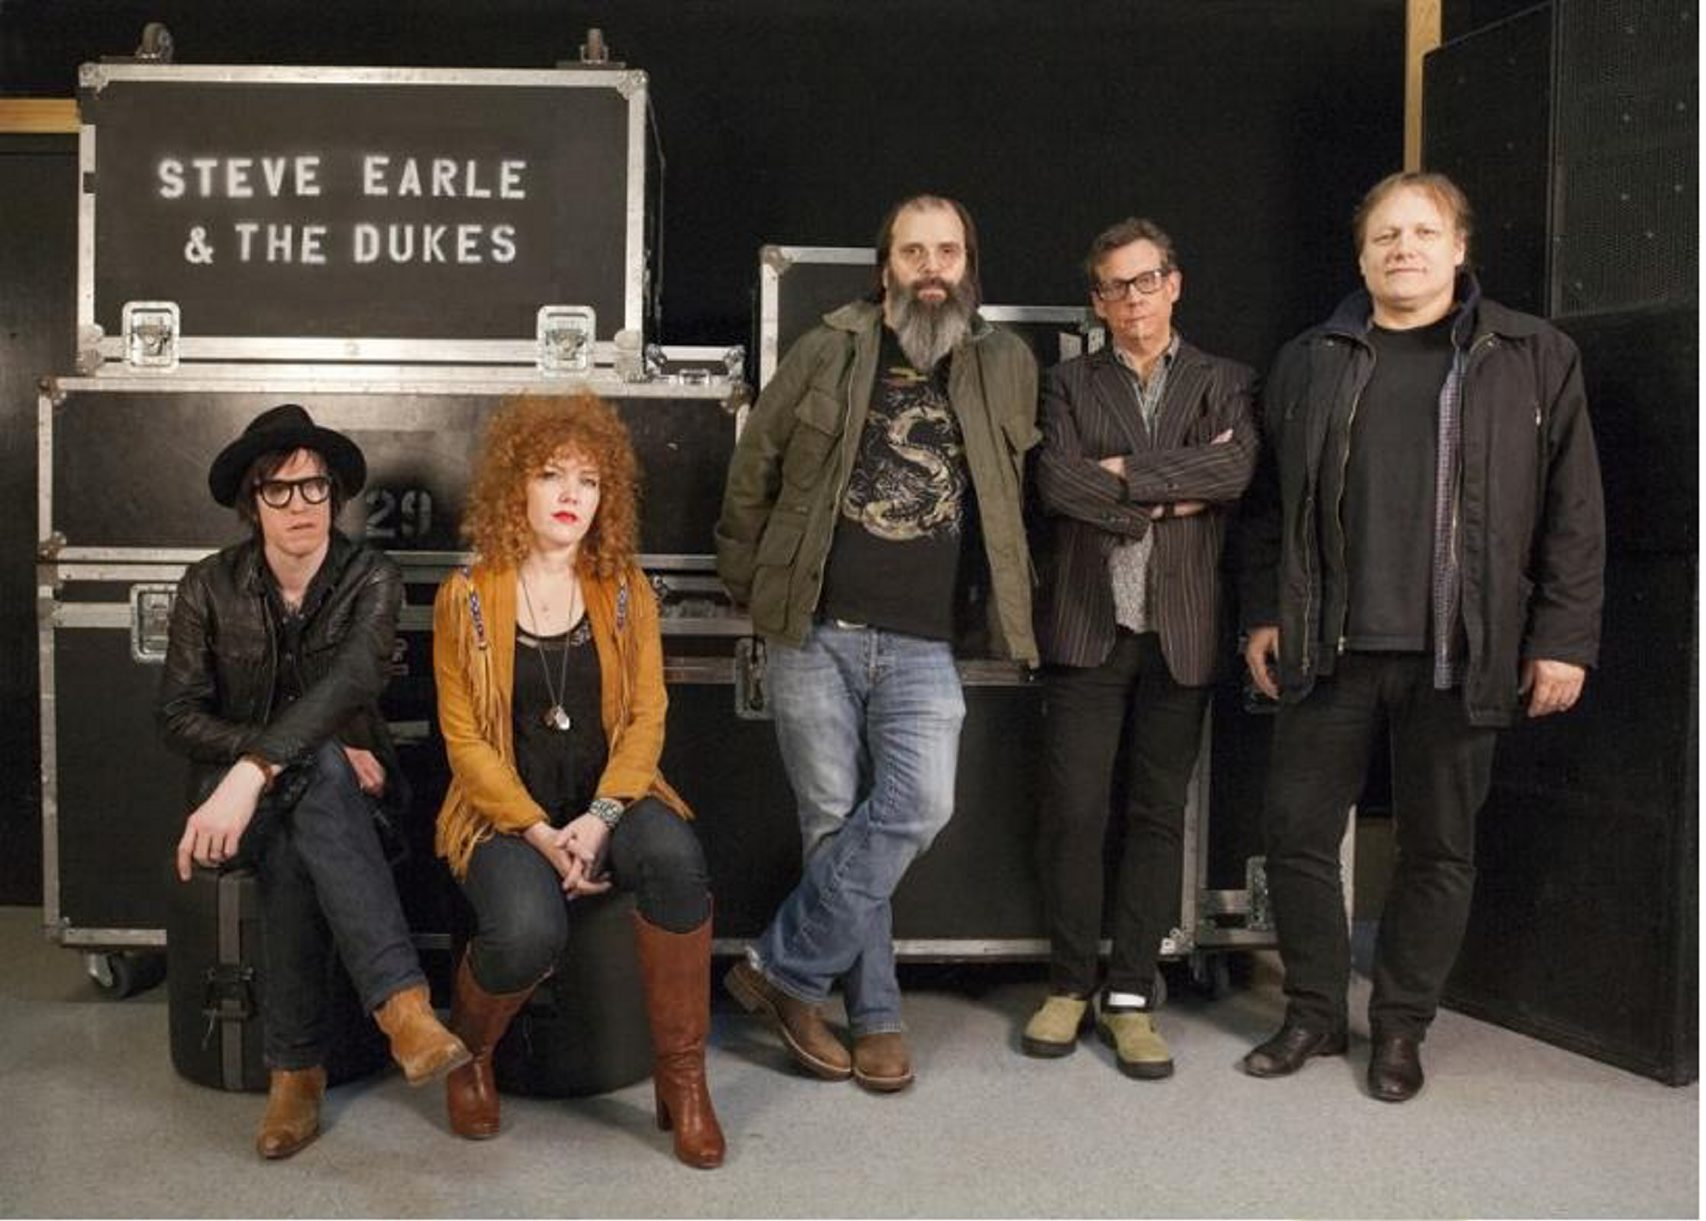 Steve Earle & the Dukes will play Buffalo Iron Works on July 7.